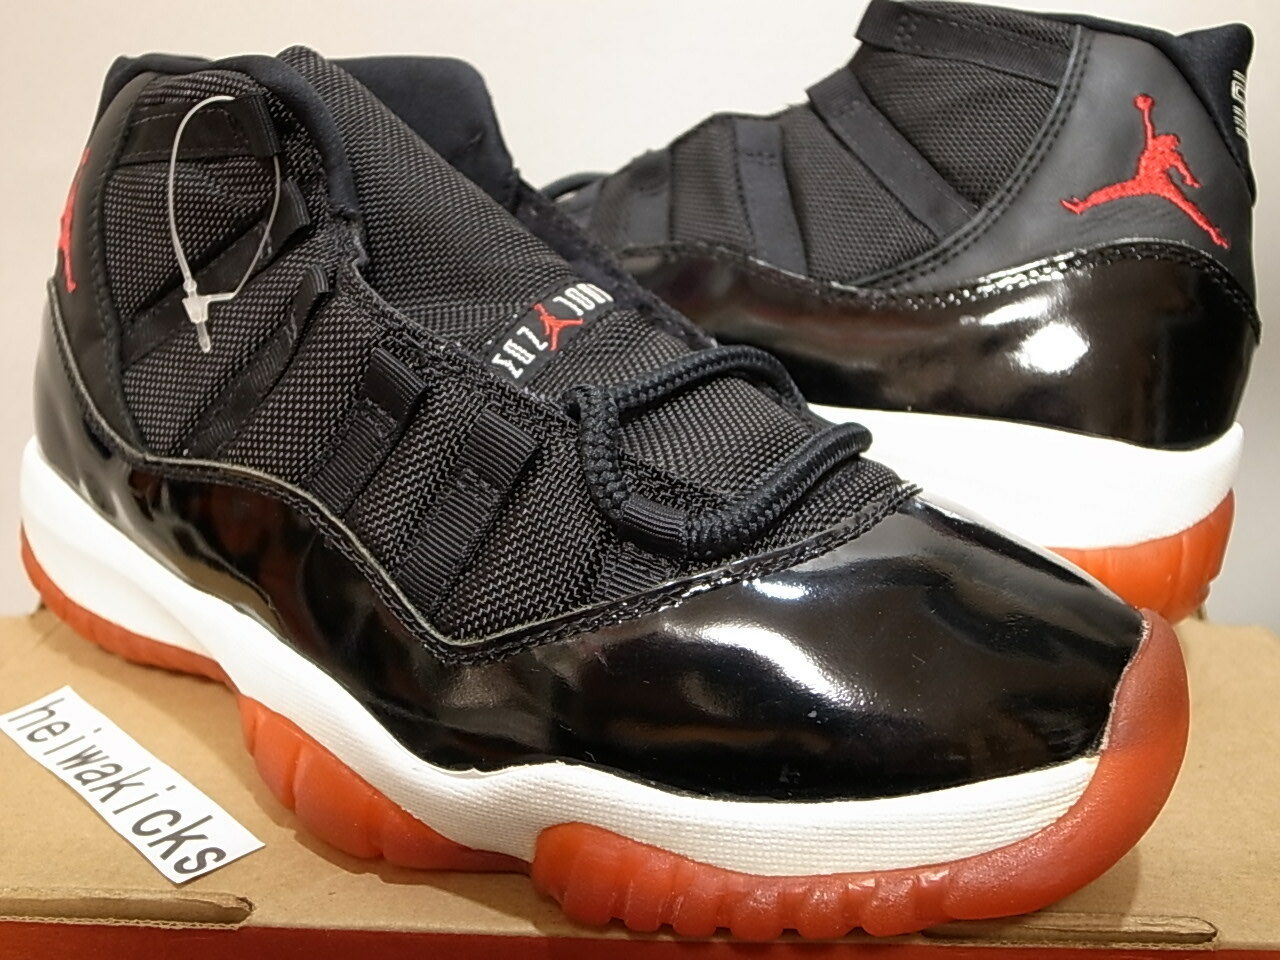 1996 NIKE AIR JORDAN 11 BRED ORIGINAL OG Black-True Red-White 130245-062 size 9